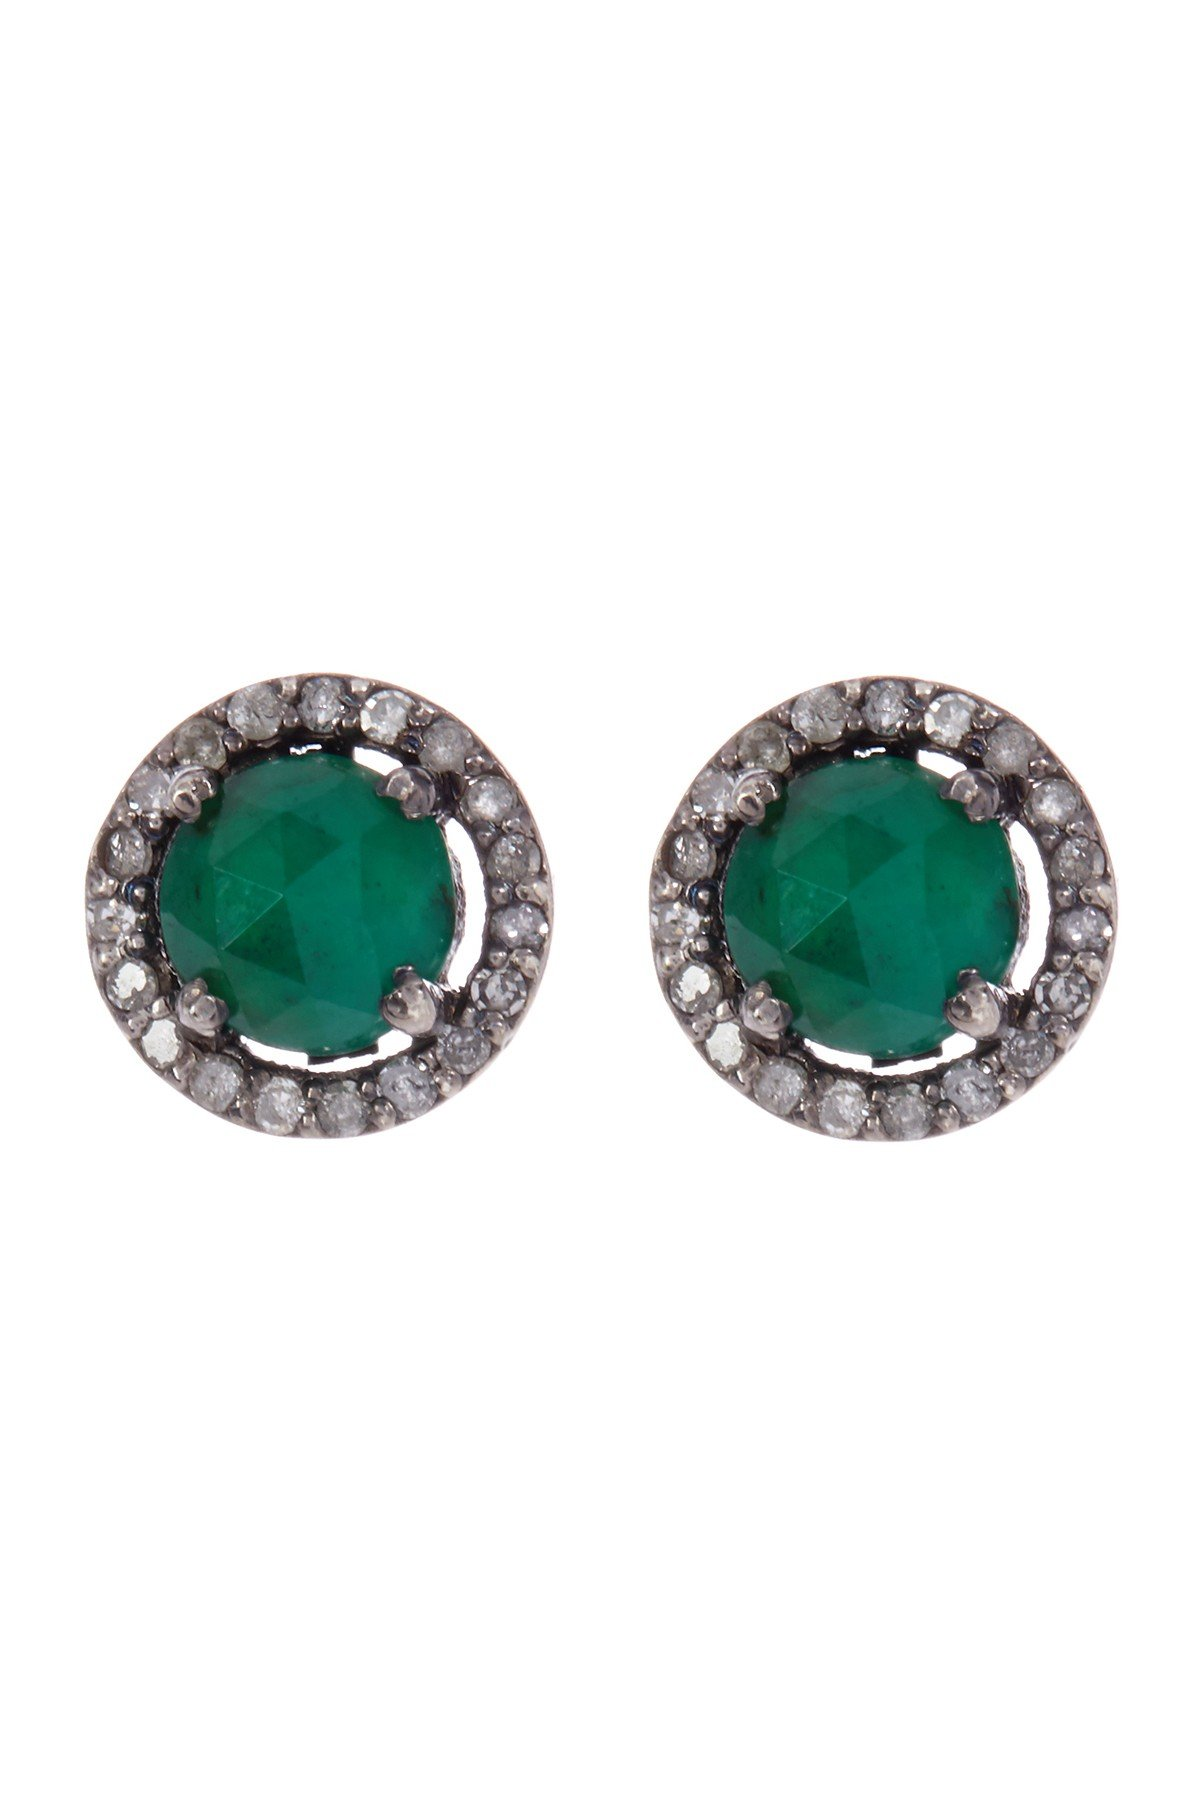 Emerald Halo Stud Earrings for Women| Sterling Silver 5mm Echo Stud Earrings With Champagne Diamond by ADORNIA (Image #1)